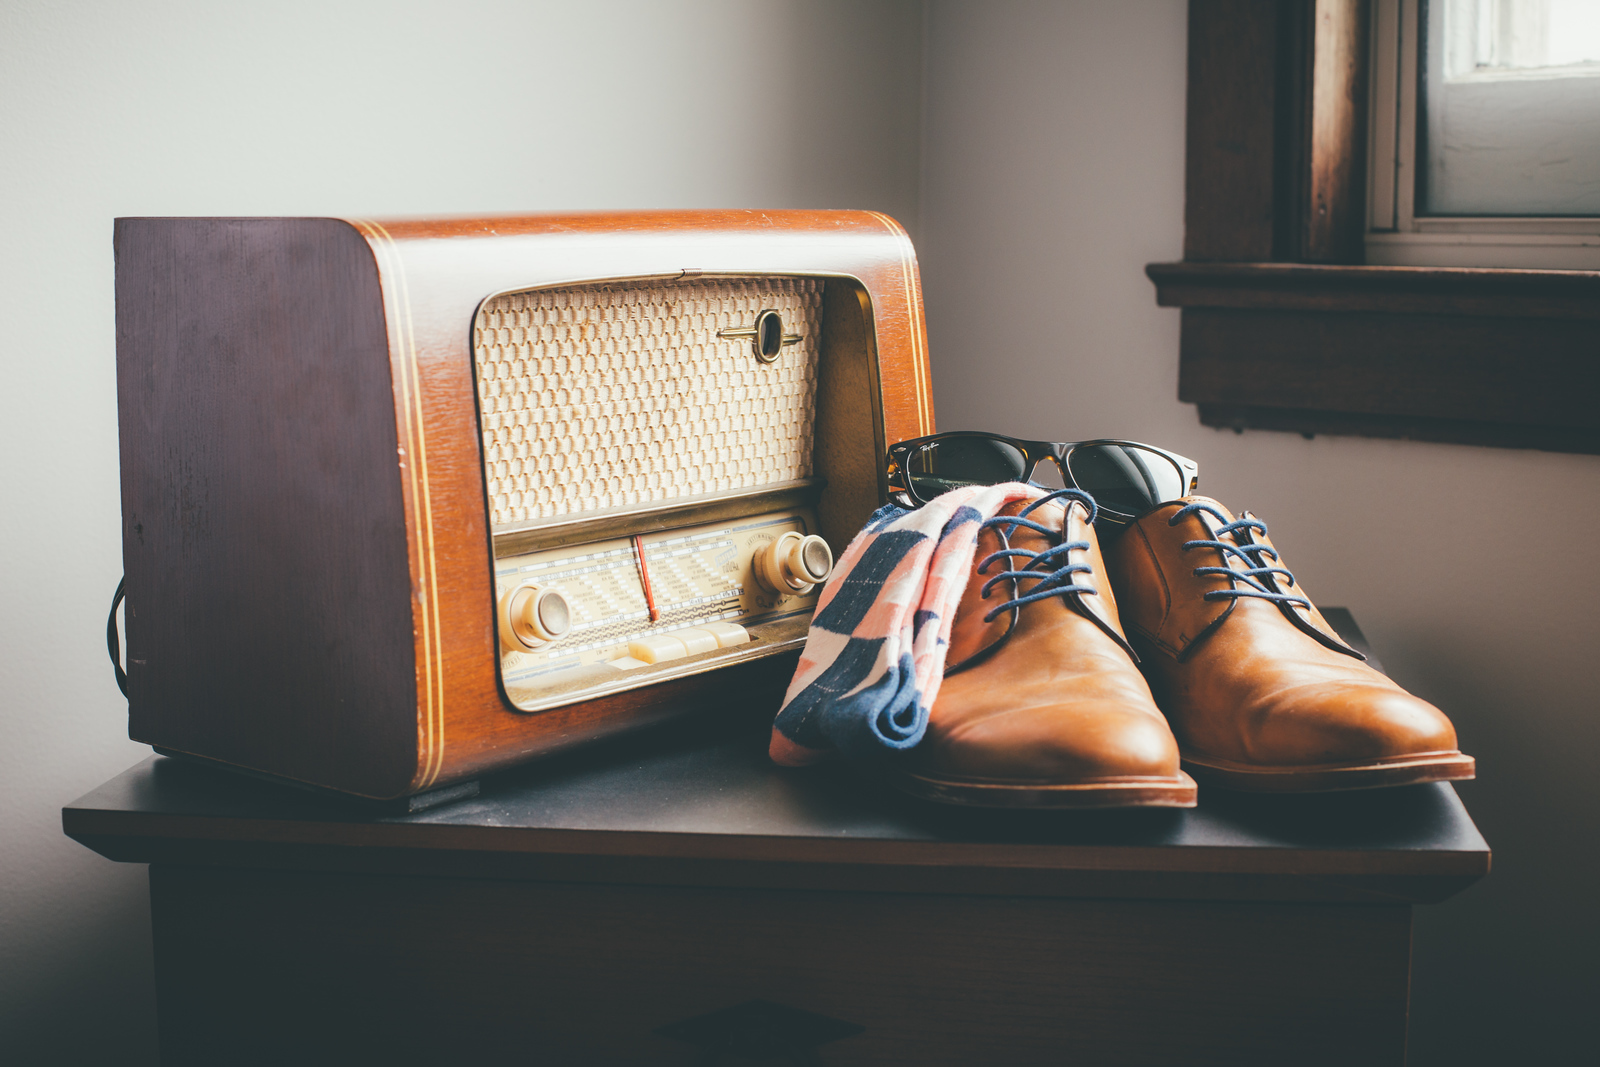 a groom's wedding shoes and socks sitting on an end table next to an antique turn dial tube radio with sunglasses perched on top